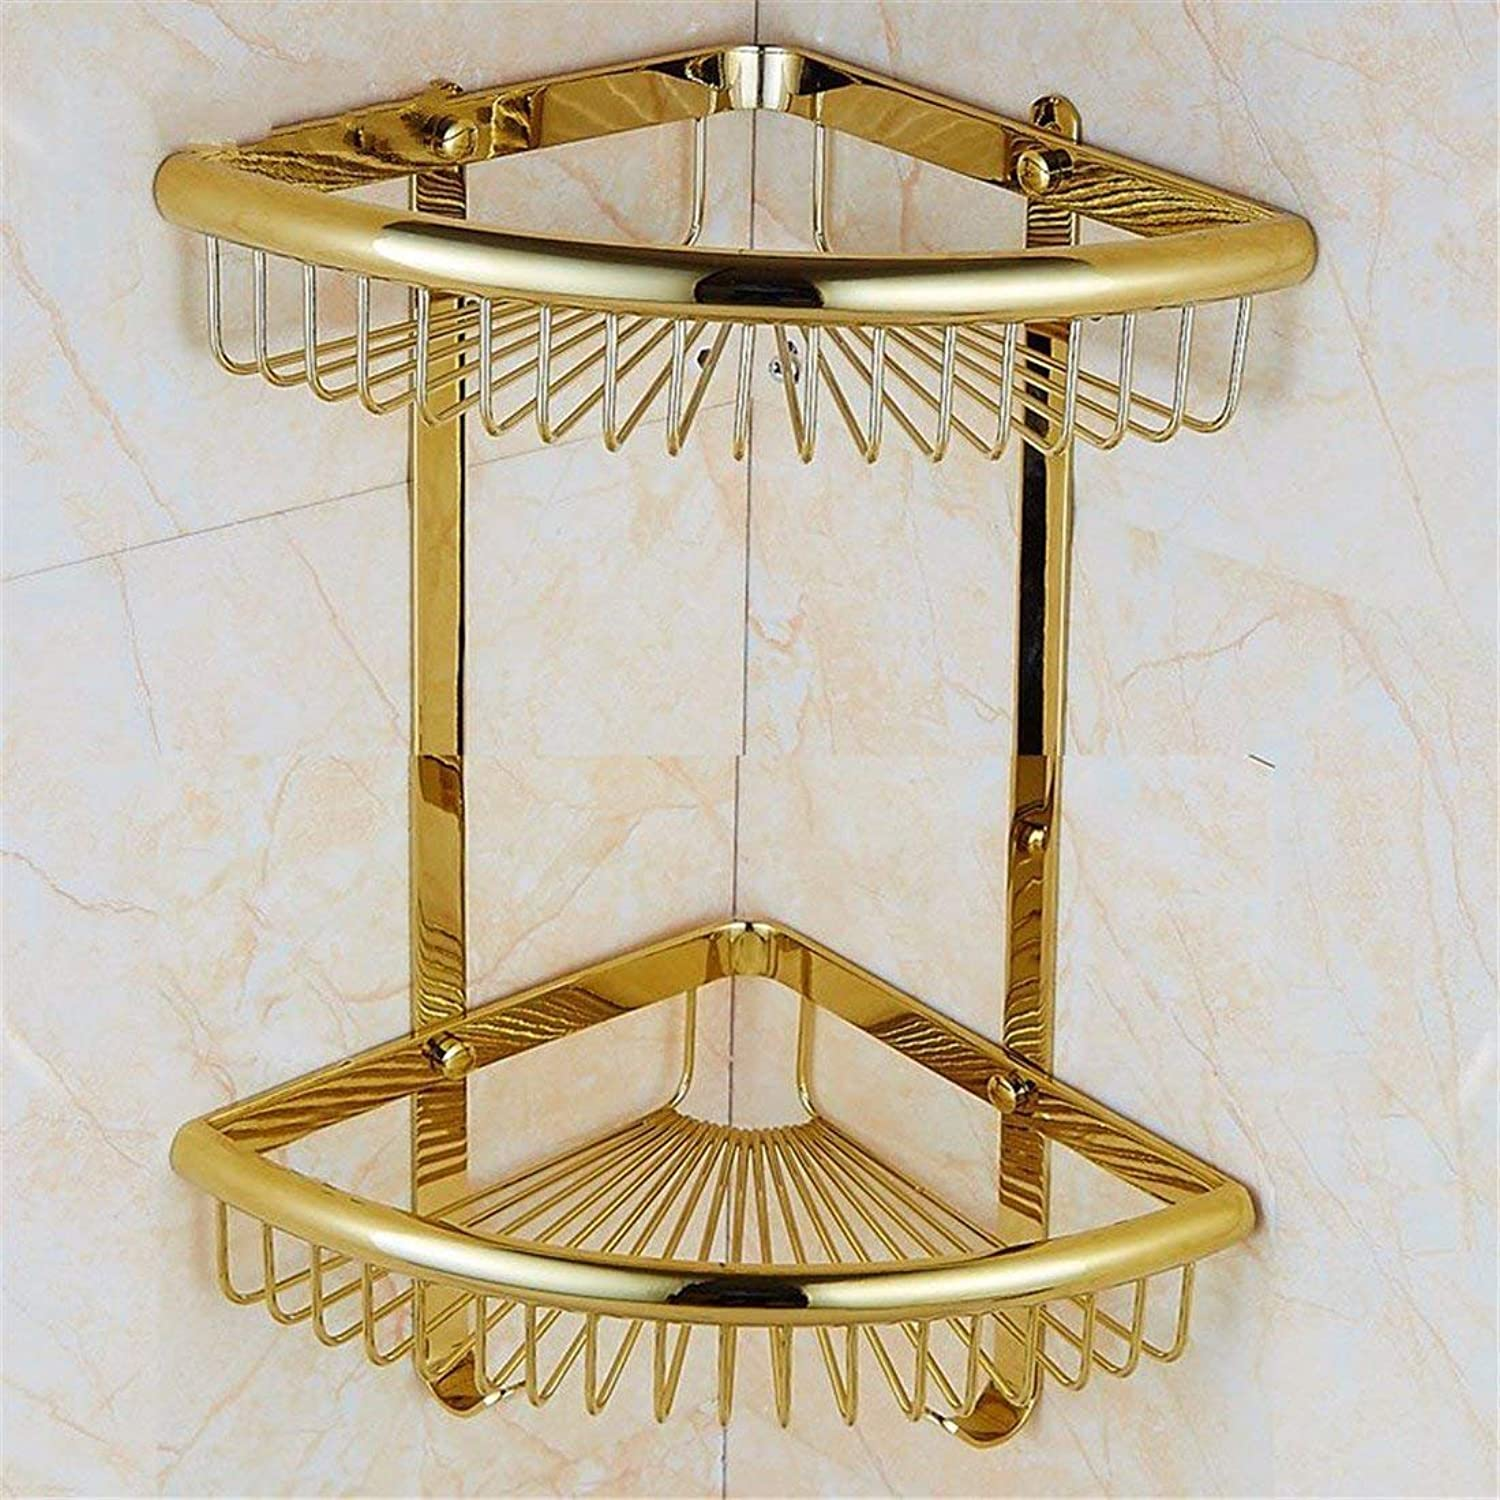 The Base of gold in Cristal Pendentif Copper Hook Hook All Bathroom, Place The Shopping Cart 2